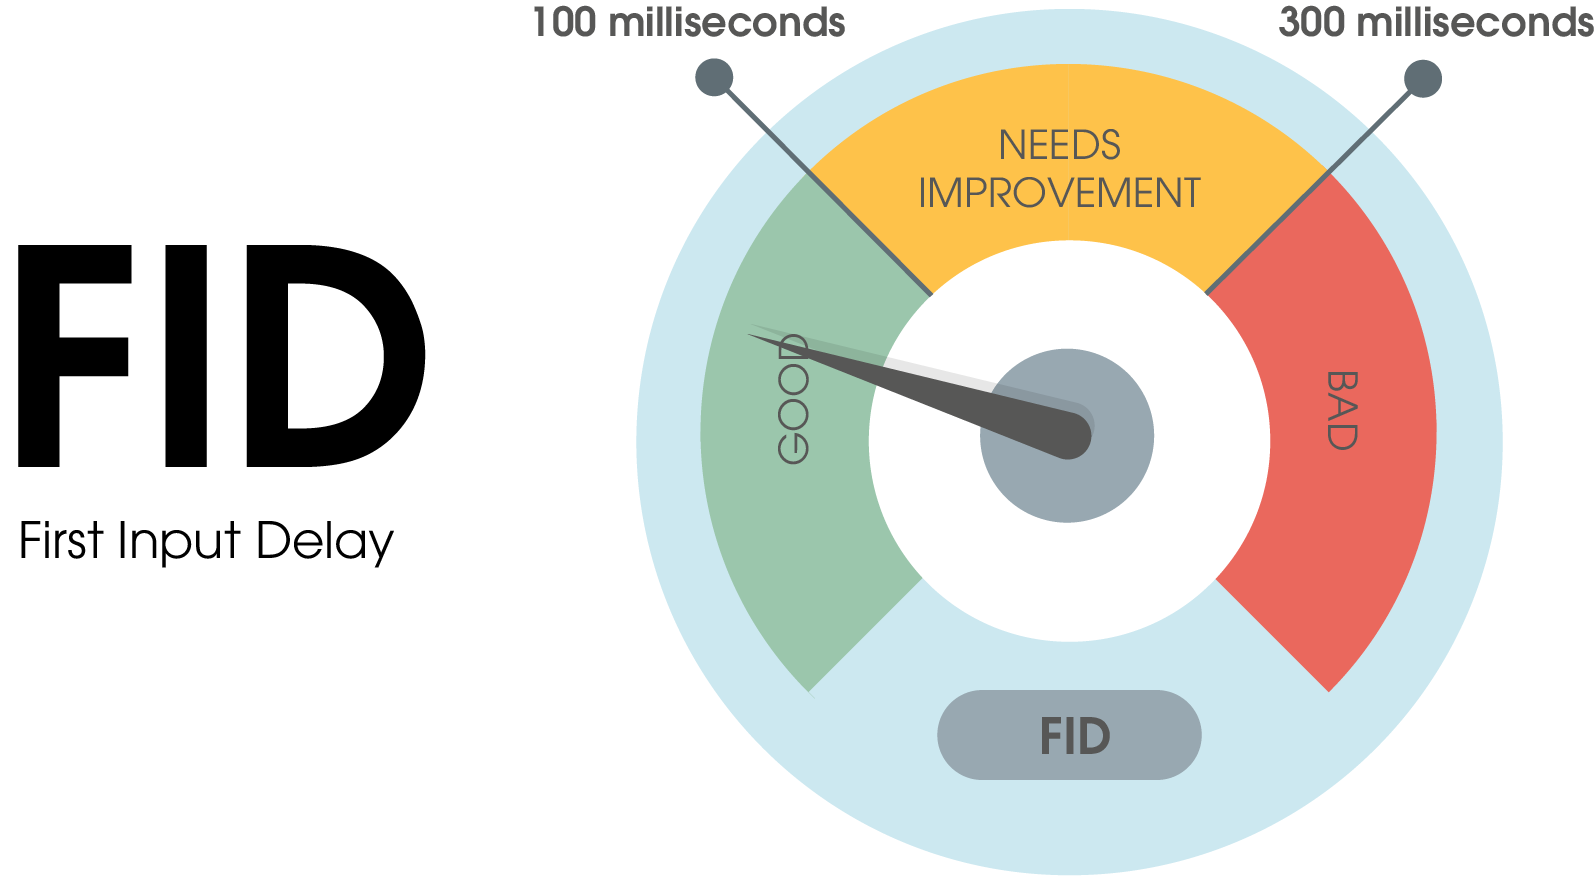 The FID (first input delay) score is divided into three ranges: 1. good: 0 to 100 milliseconds to interactivity. 2. in need of optimization: 100 to 300 milliseconds to interactivity 3. bad: 300 milliseconds or more until interactivity